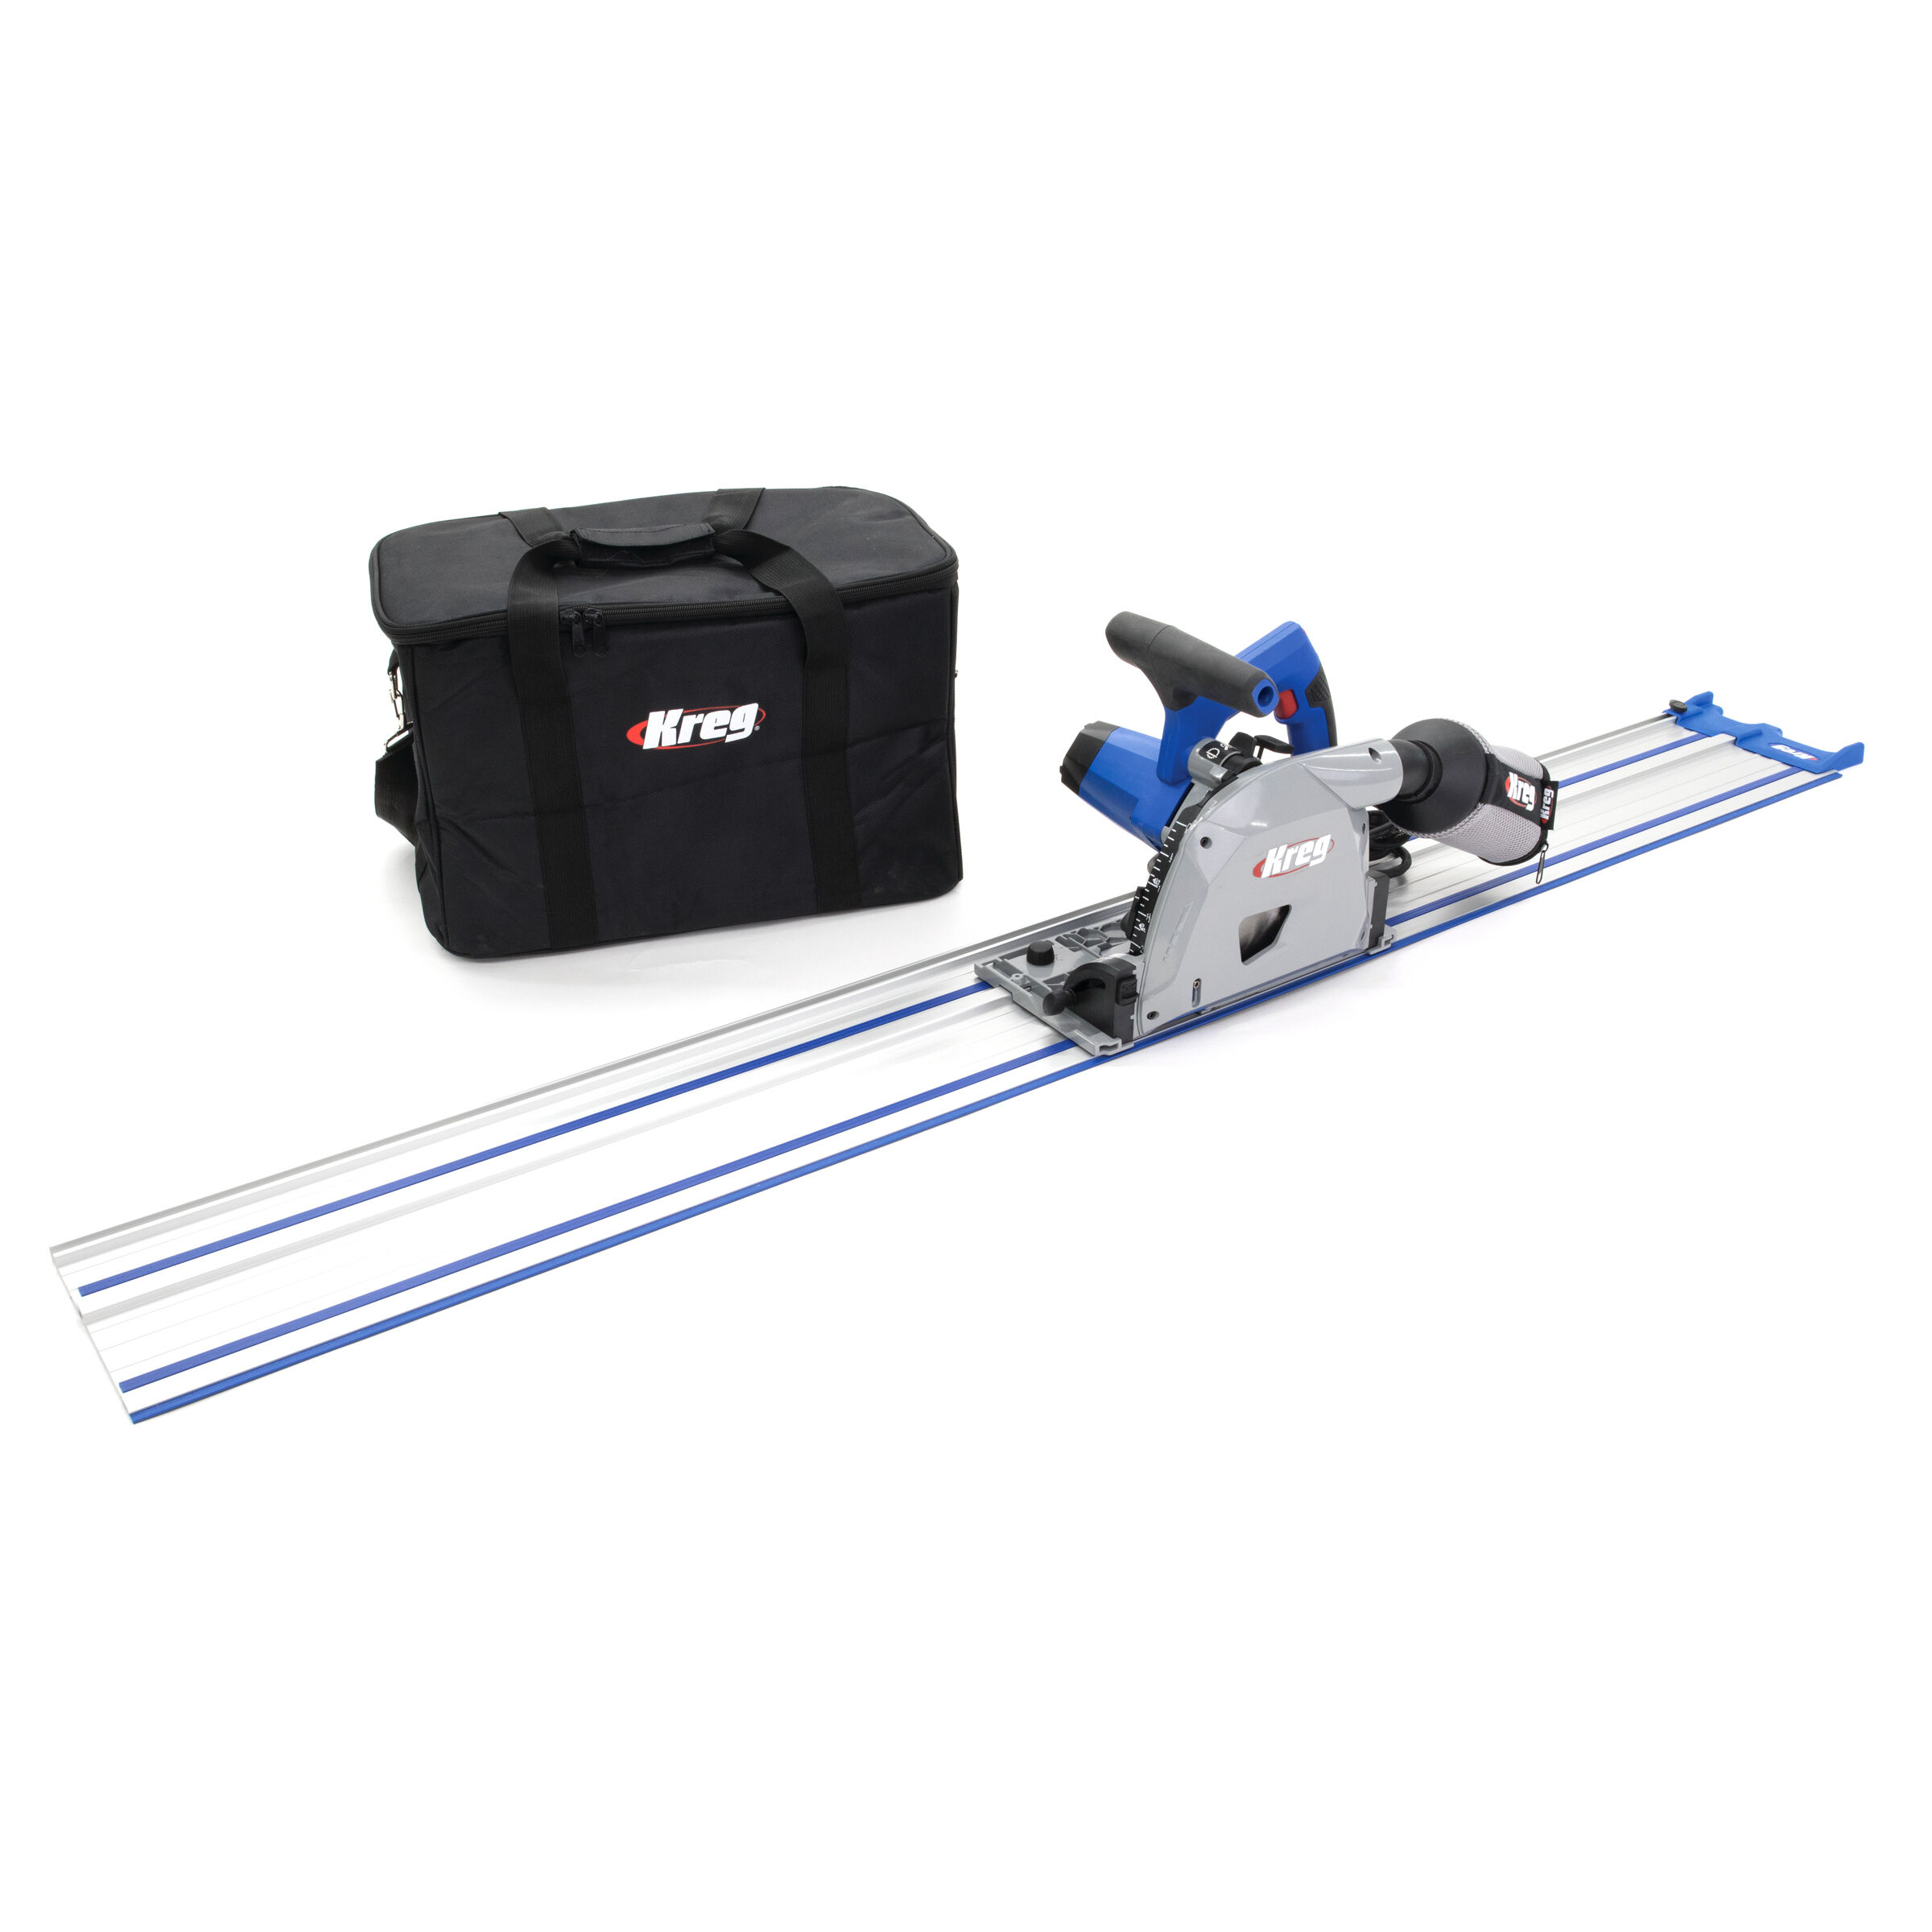 Adaptive Cutting System Saw + Guide Track Kit